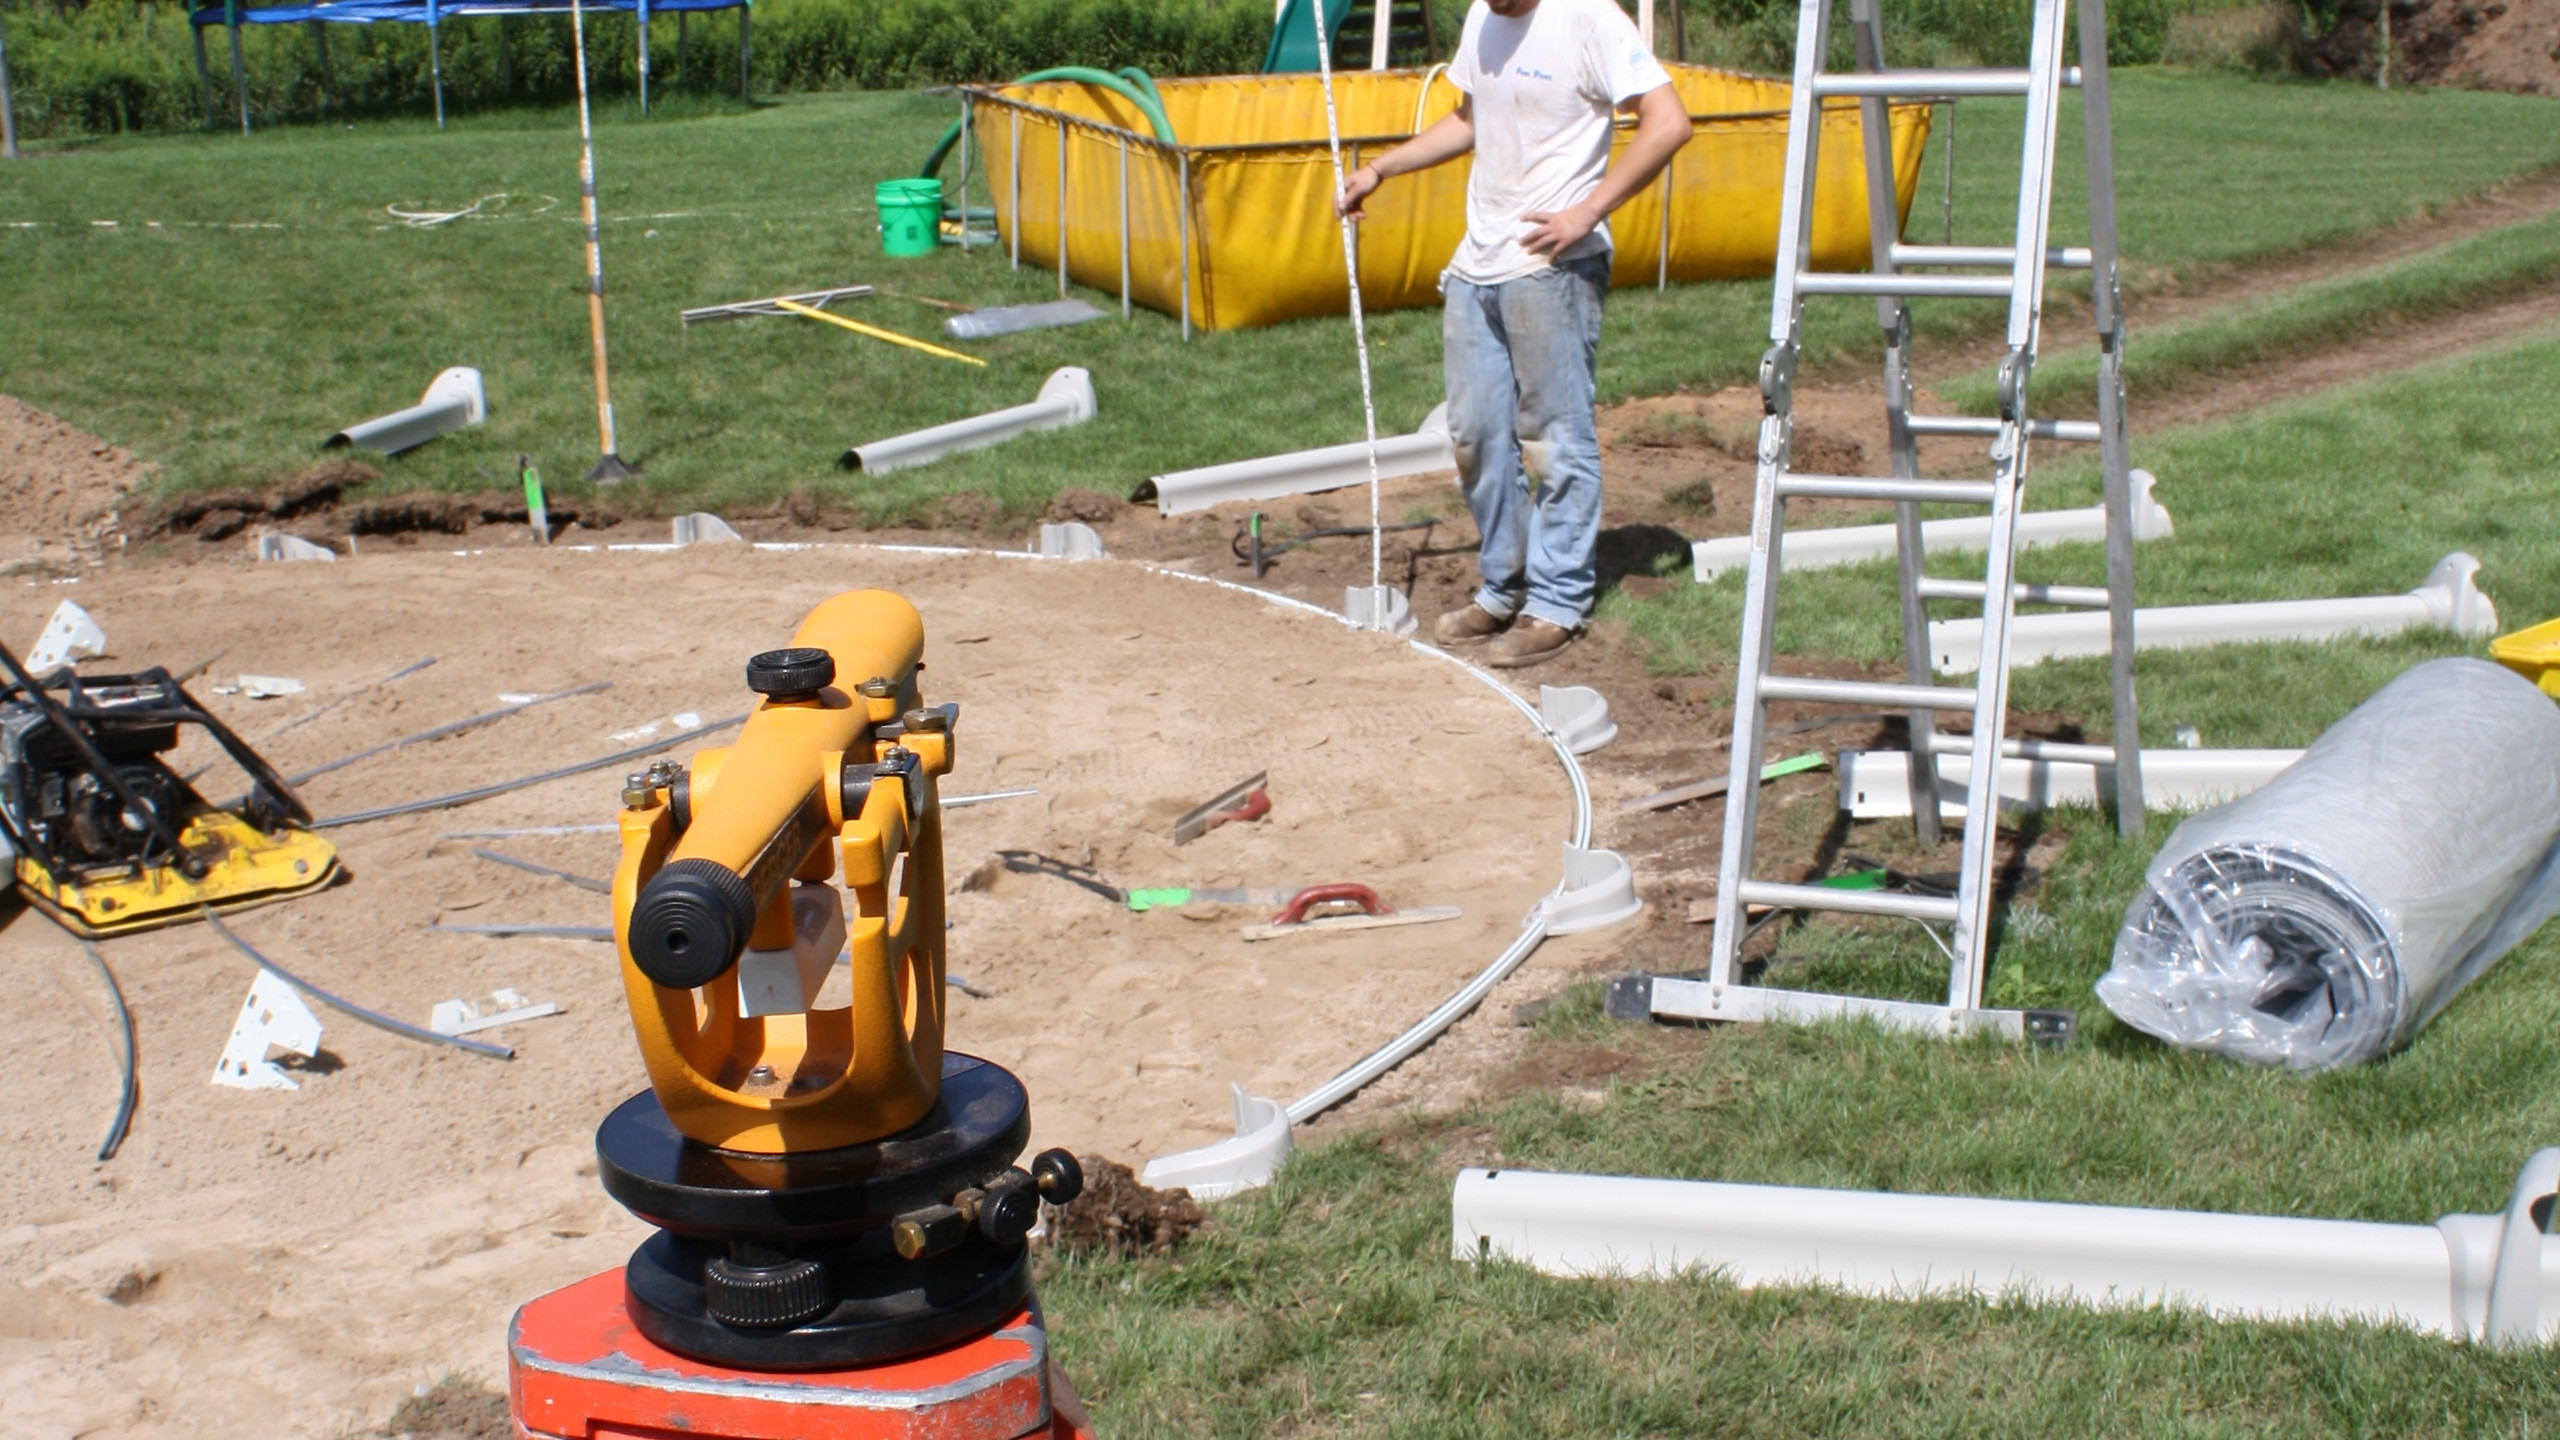 """After the pool is rounded, the sand base installed and the parts staged, we double check the levelness of the bottom track to ensure we are still within our 1/8"""" tolerance."""